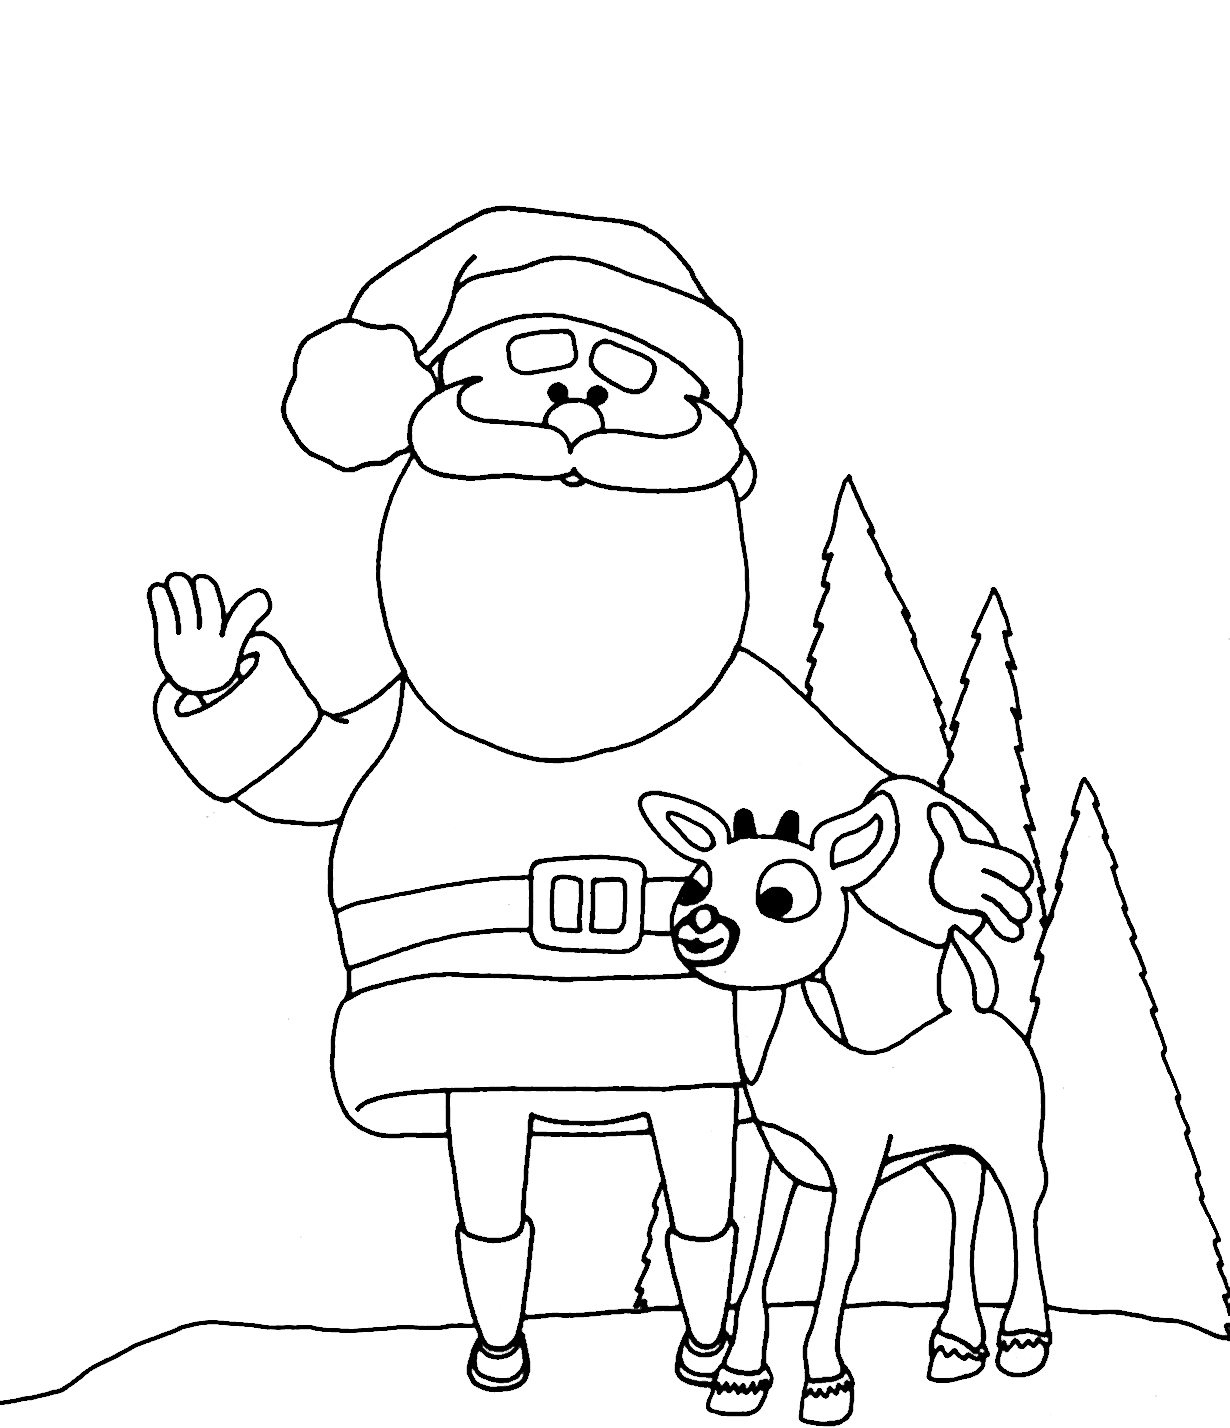 Christmas Reindeer Coloring Sheets With 28 Collection Of Pages Santa And High